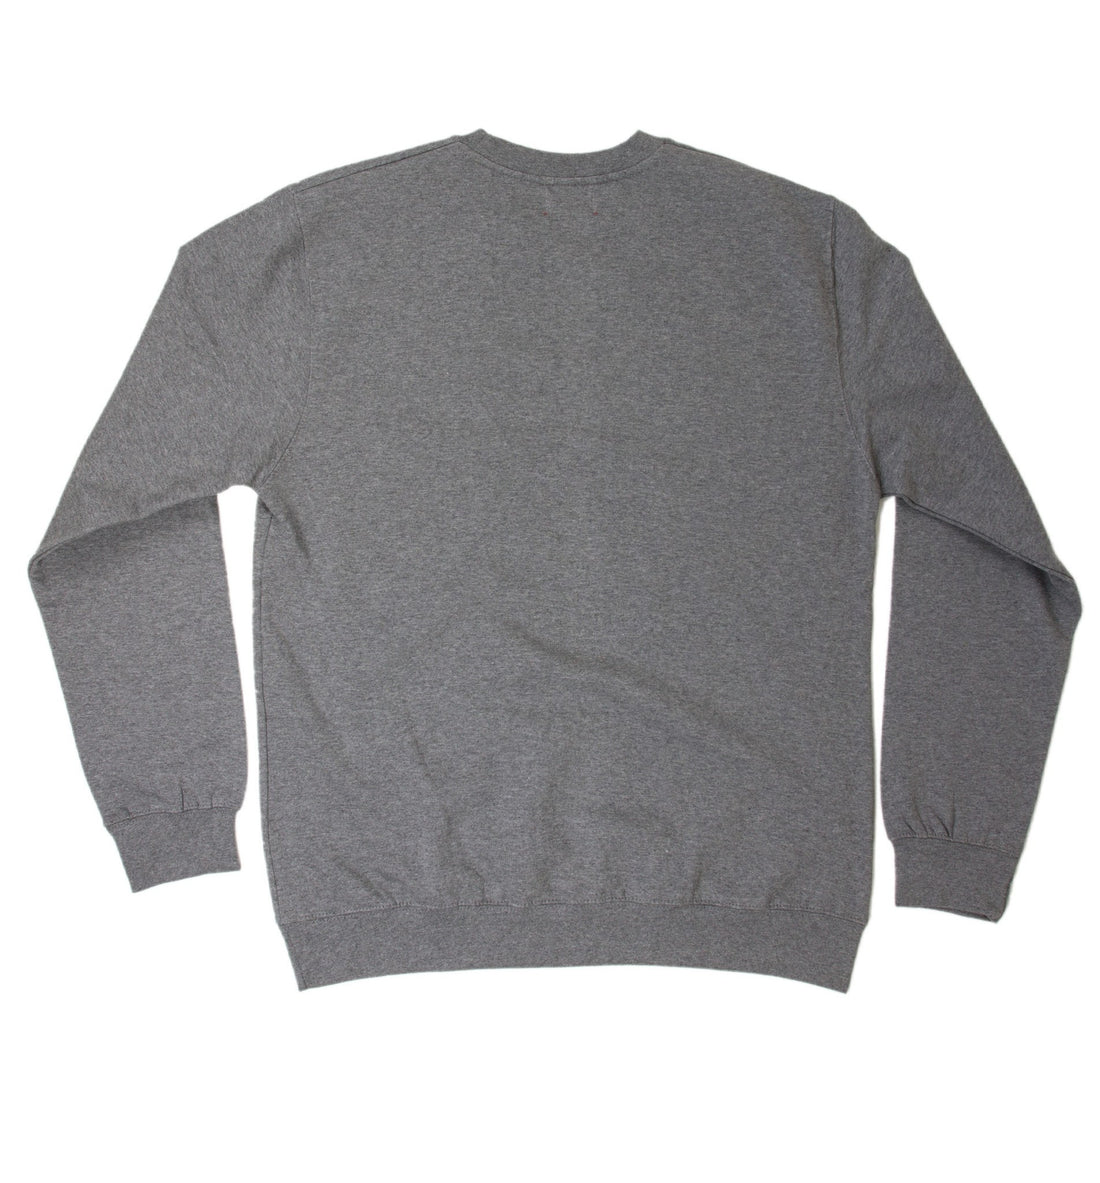 INR Terrain Fleece - Apparel: Men's: Fleece - Iron and Resin